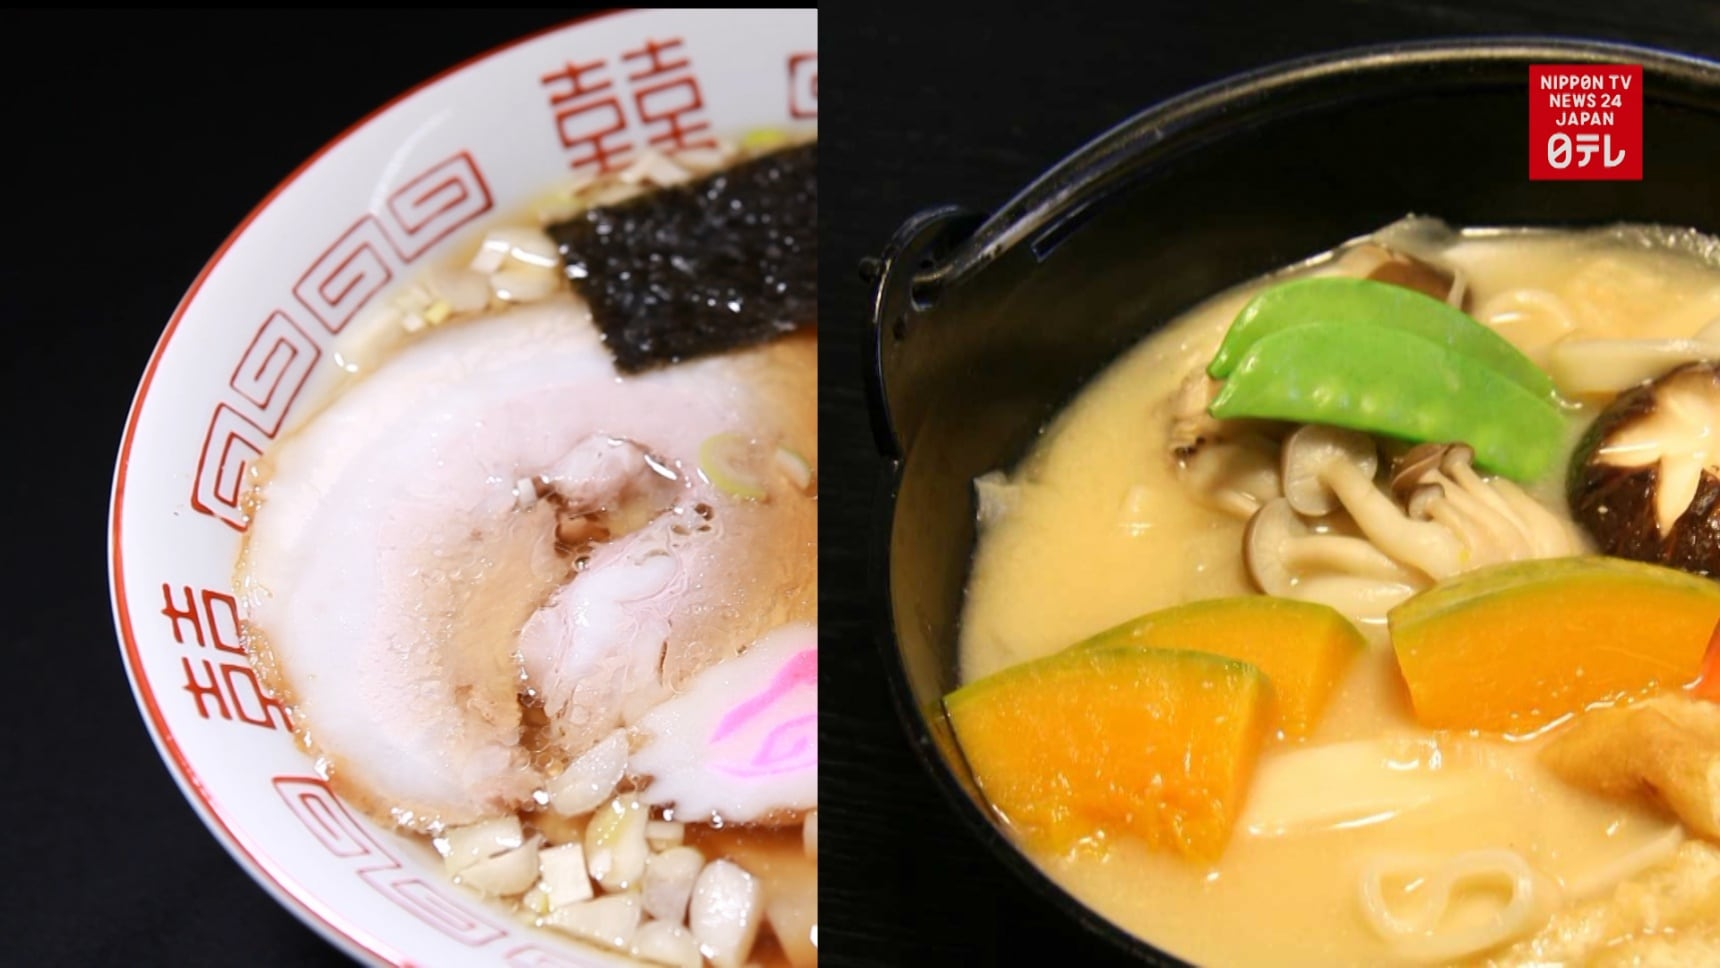 Meet the New Ramen Craze in Yamanashi